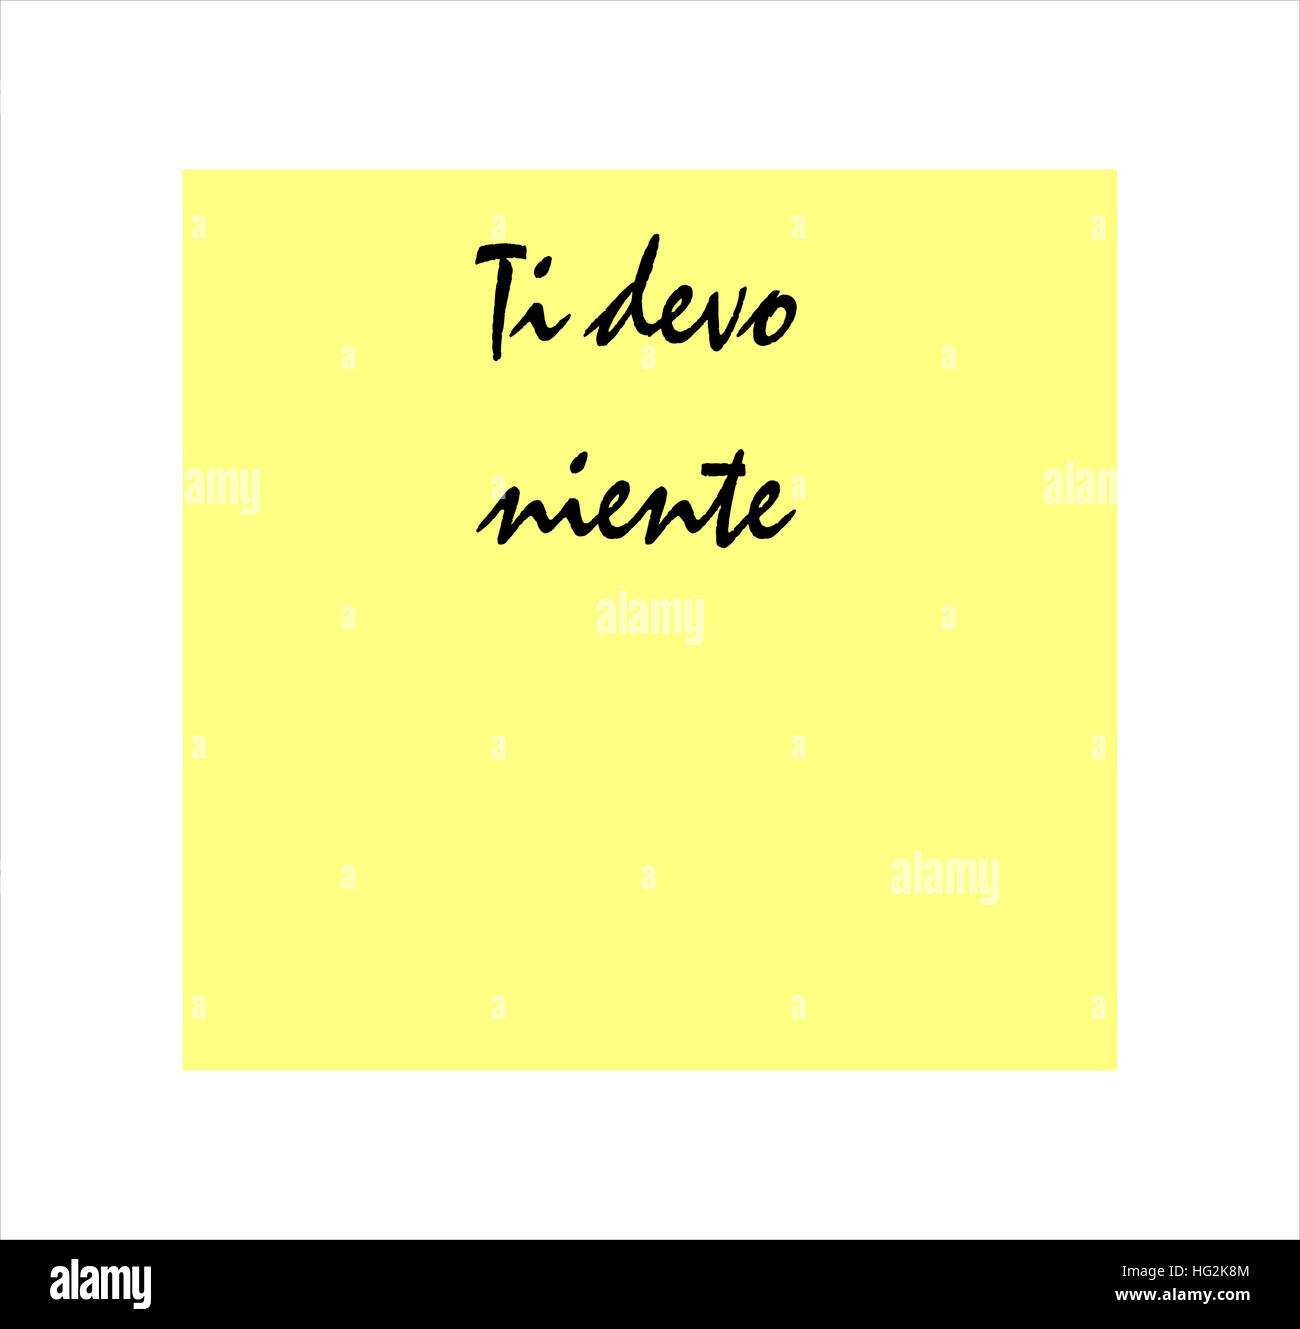 I owe you nothing message in Italian on yellow post it sticker - Stock Image